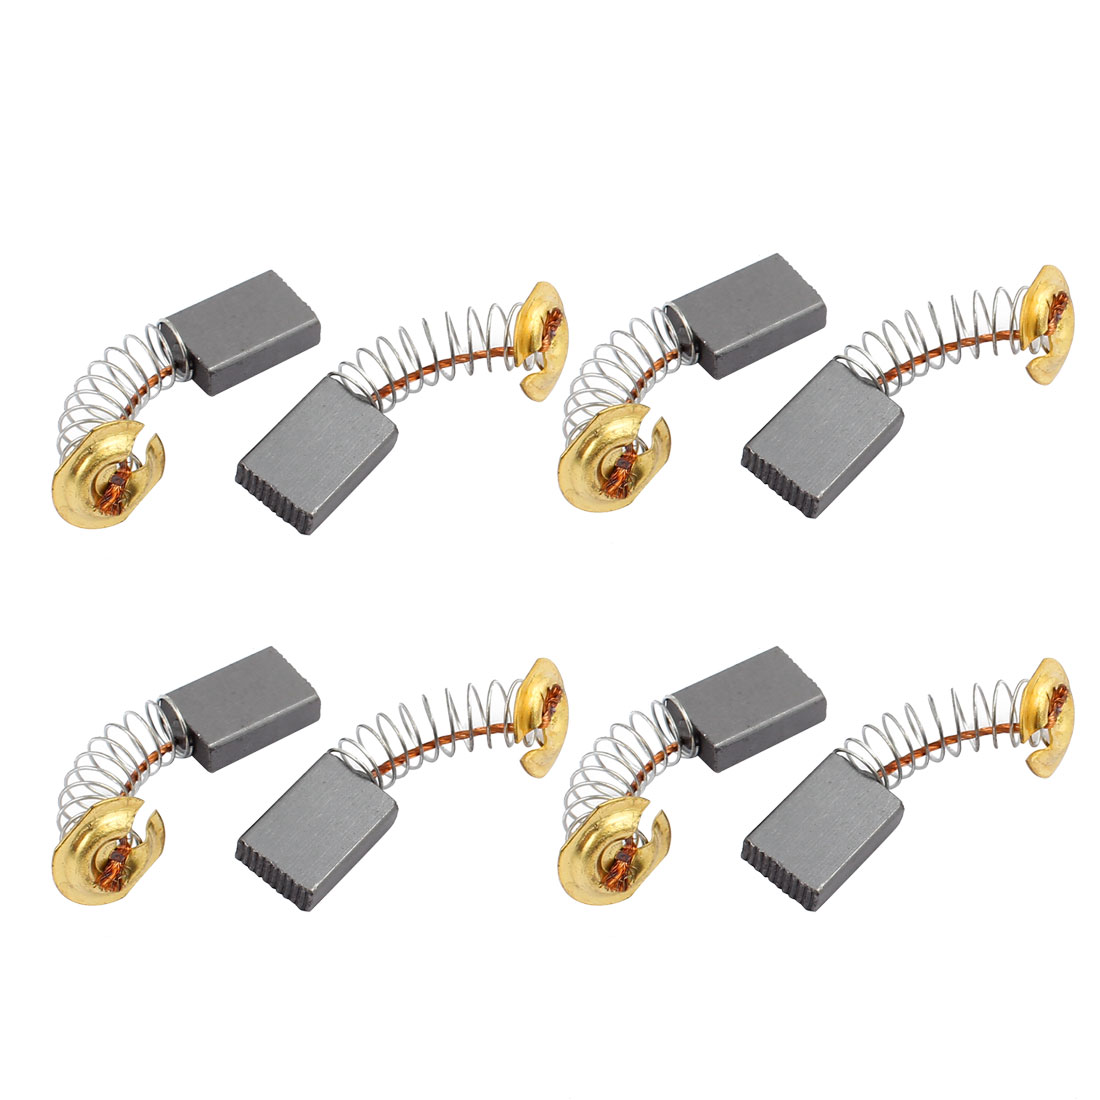 4 Pairs Electric Drill 15.5mm x 11mm x 5mm Motor Carbon Brushes Spare Part